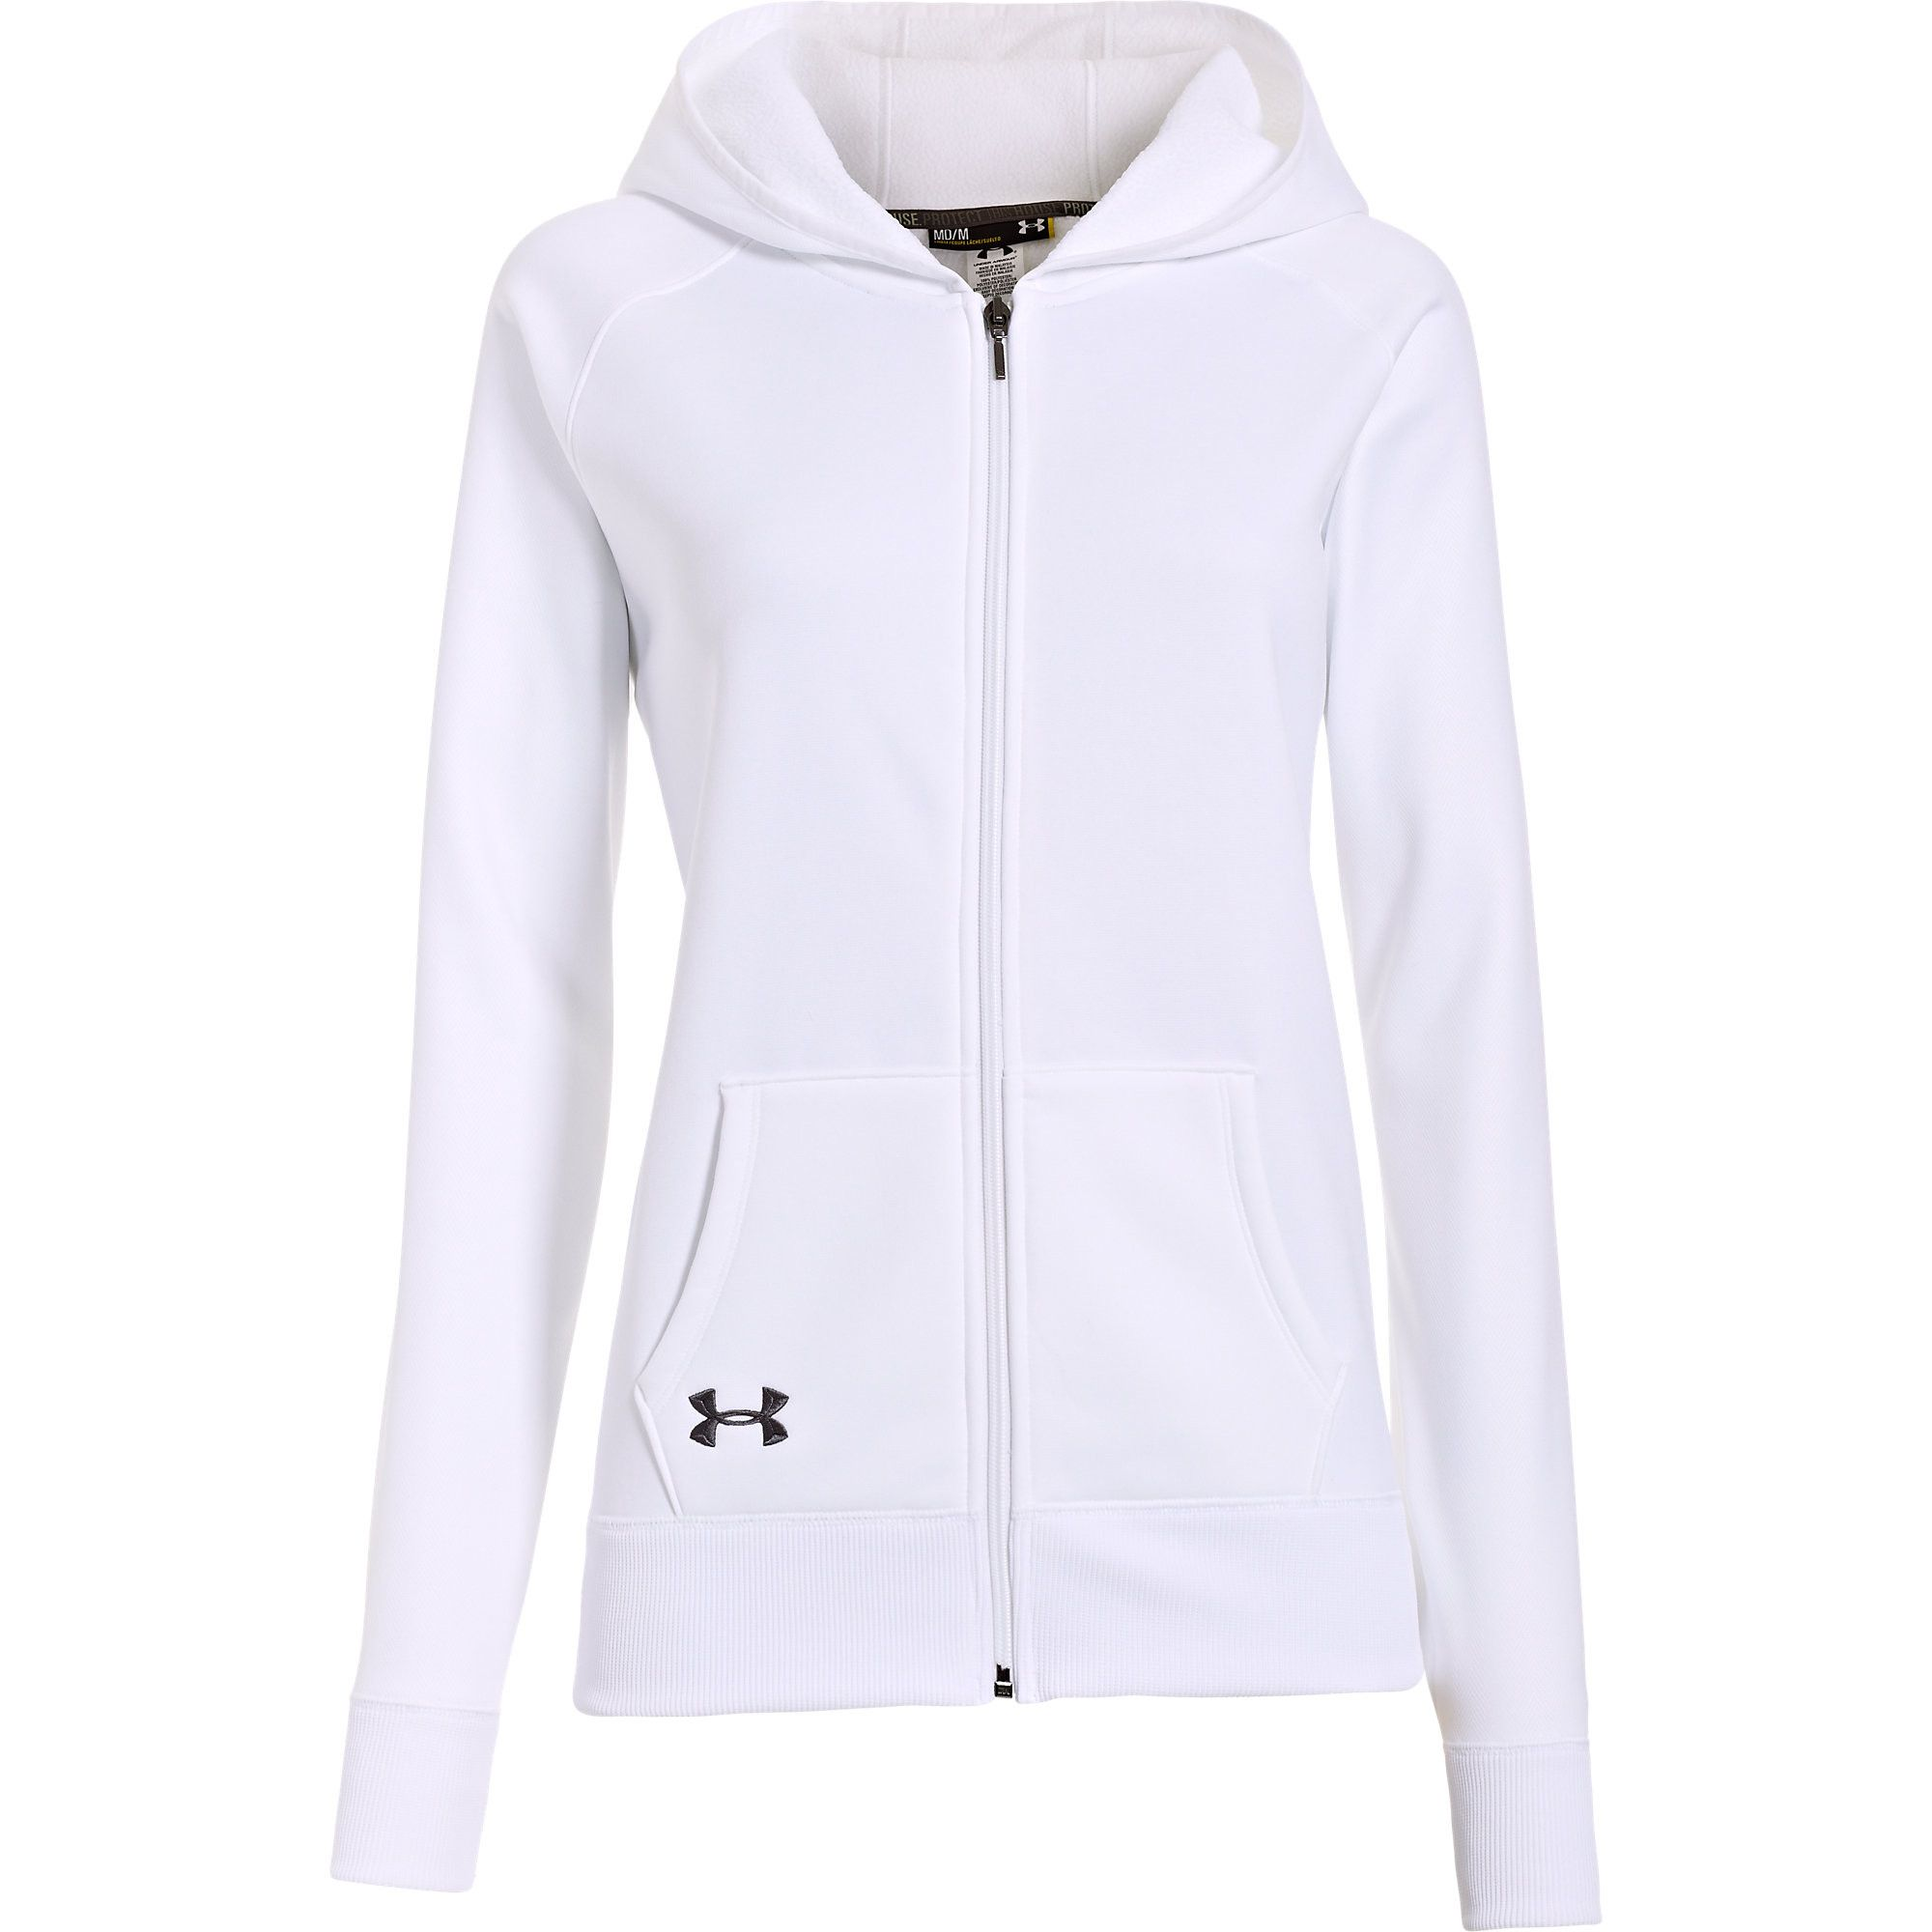 Under Armour Women s Storm Armour Fleece Full Zip Hoodie (White ... c87a7a0bdc